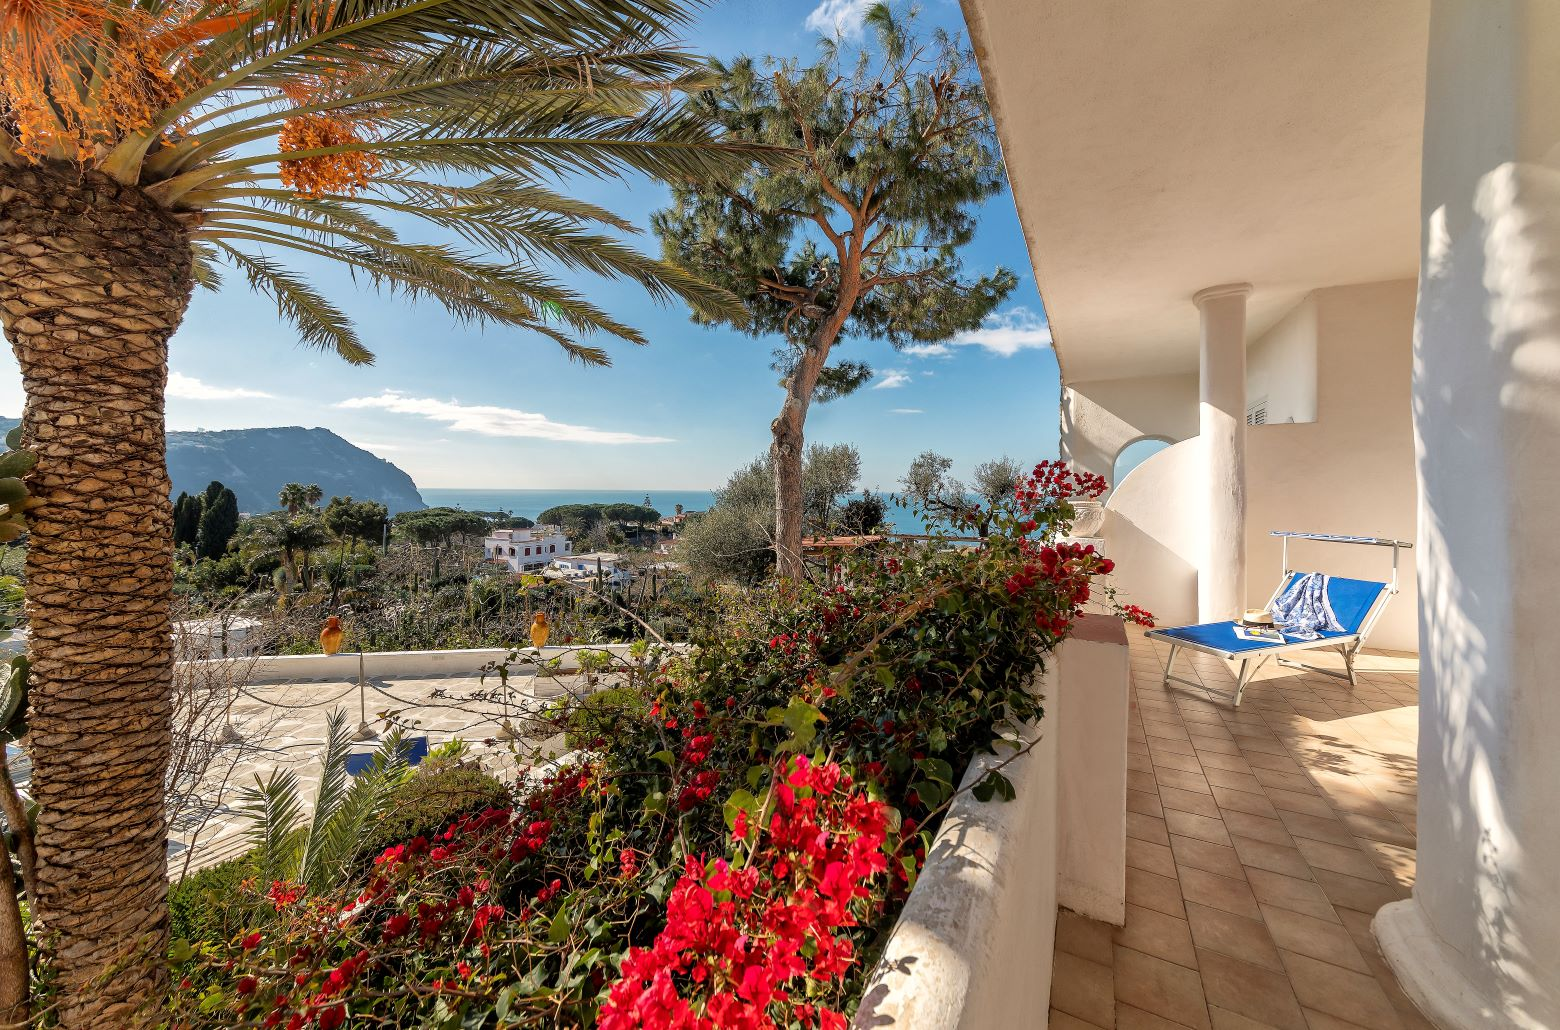 Ischia Hotel Room Apartment BB Self catering